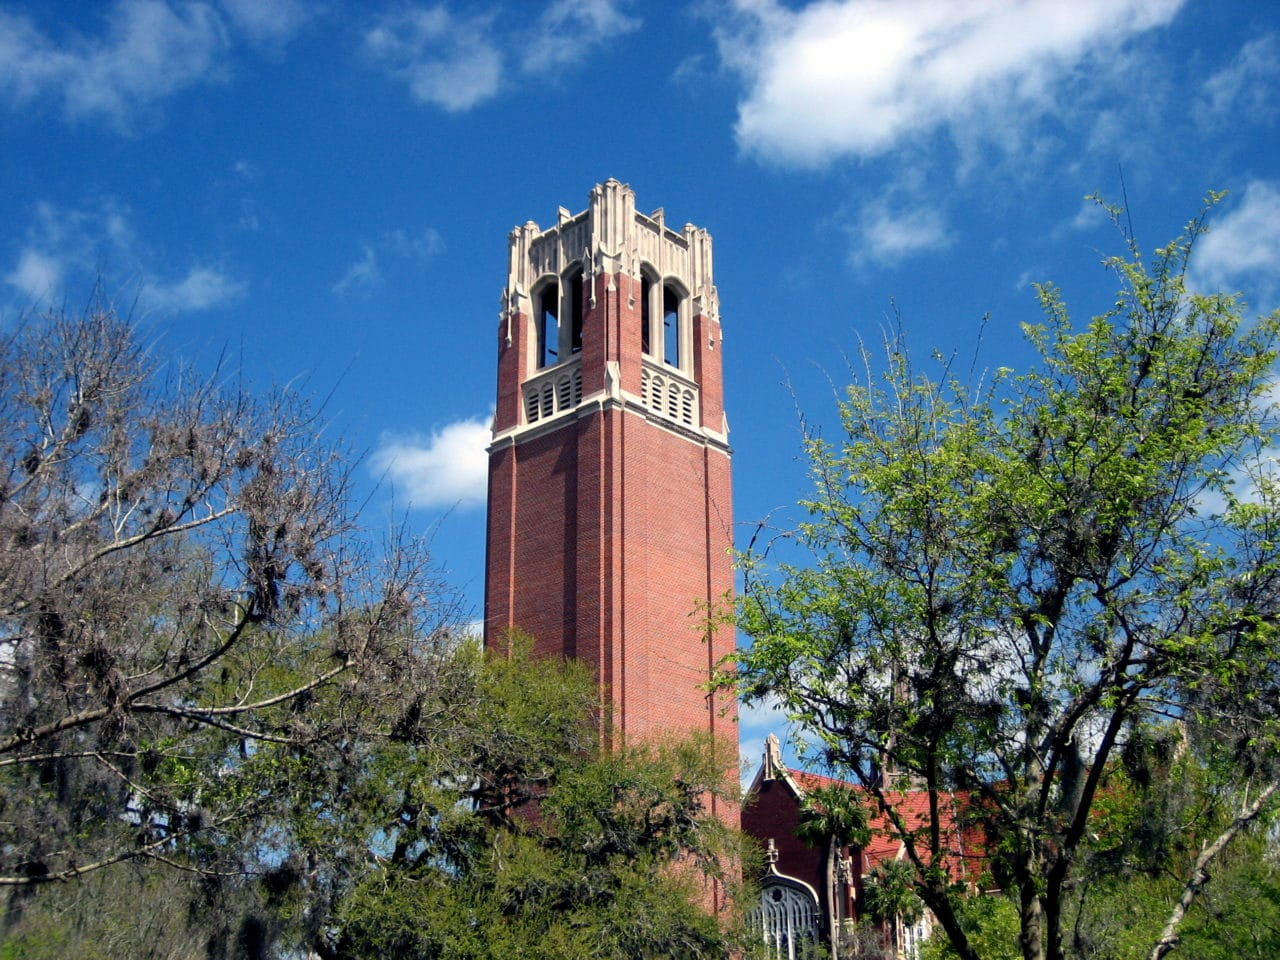 Century_Tower_University_of_Florida-e1572541010785.jpg